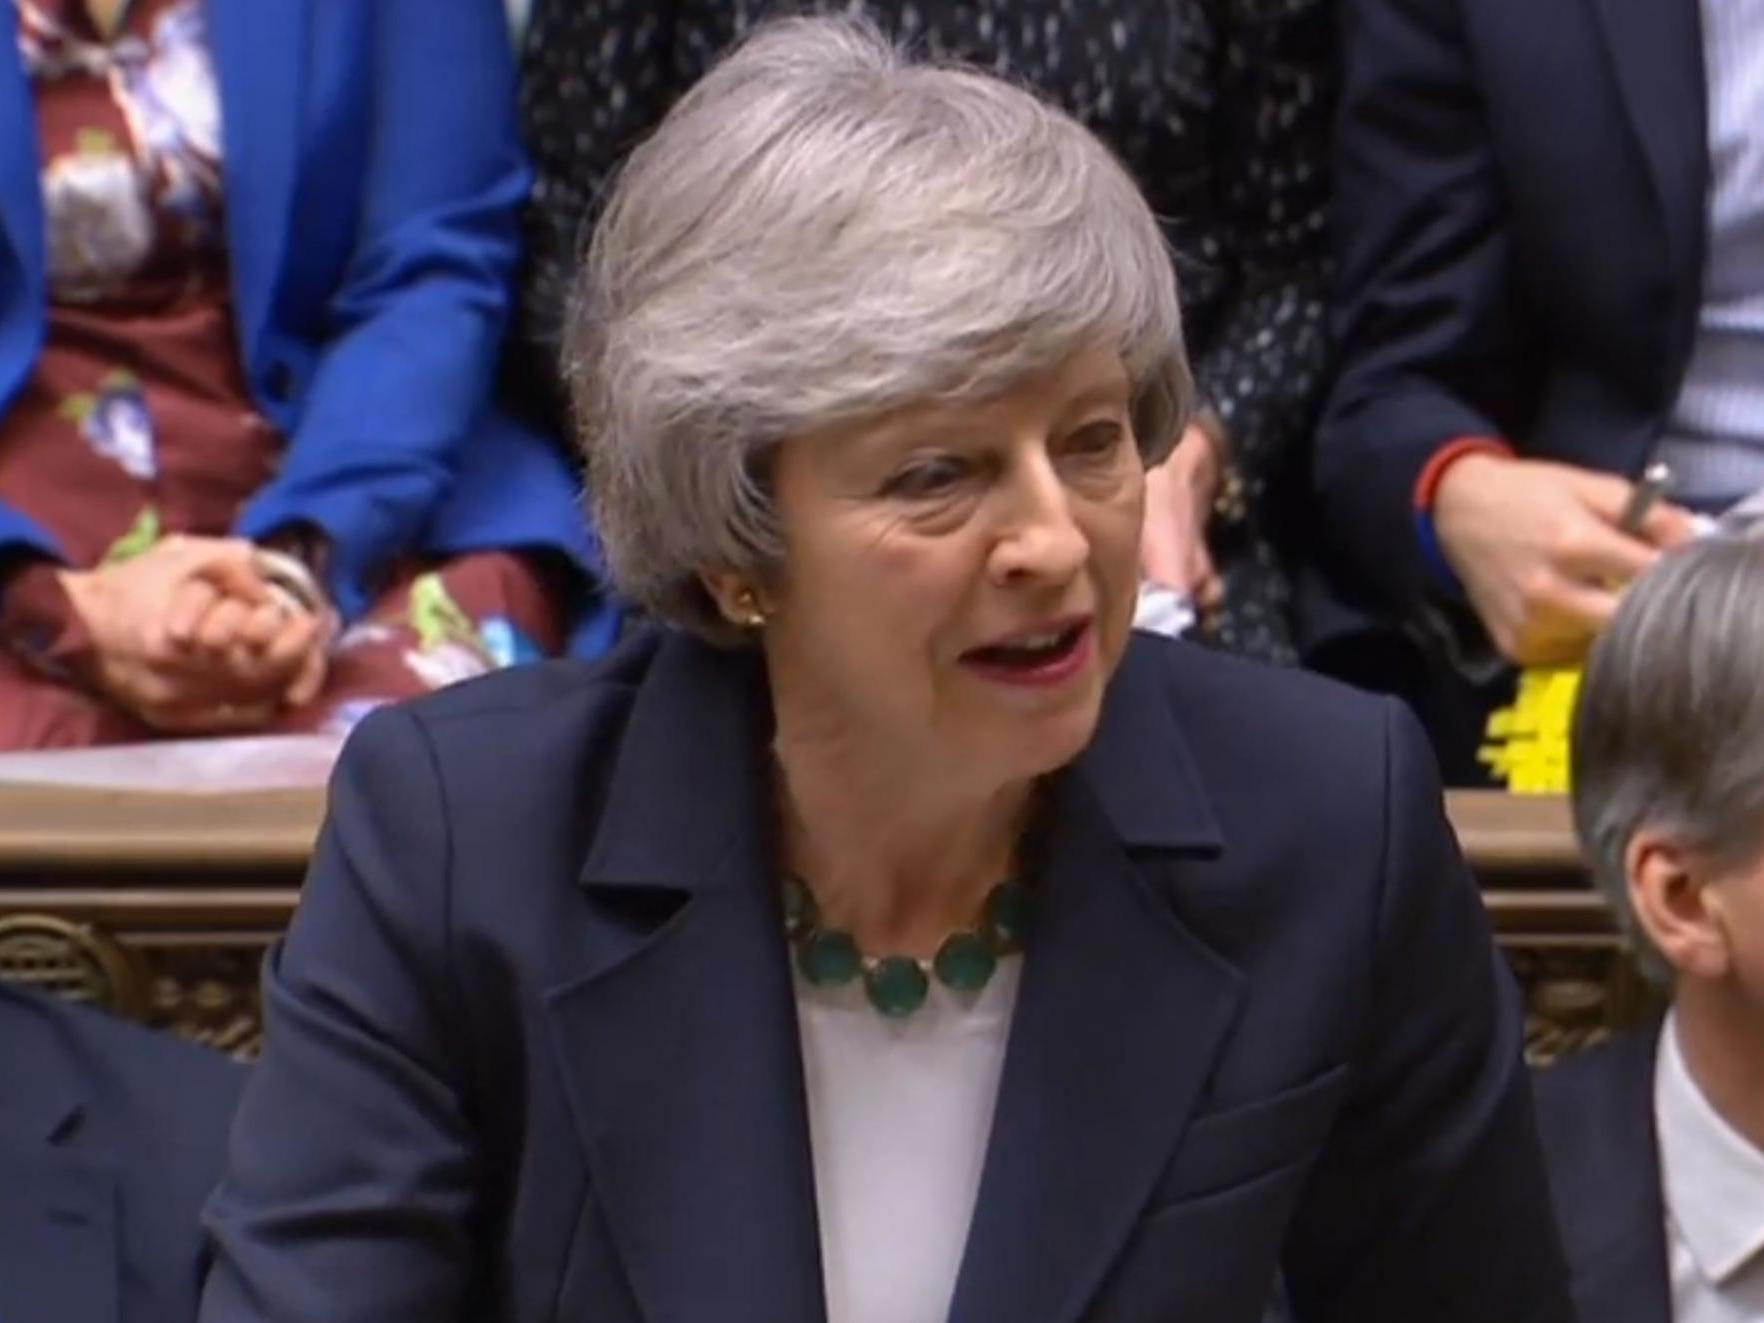 The Shamima Begum debate plays right into Theresa May's hands